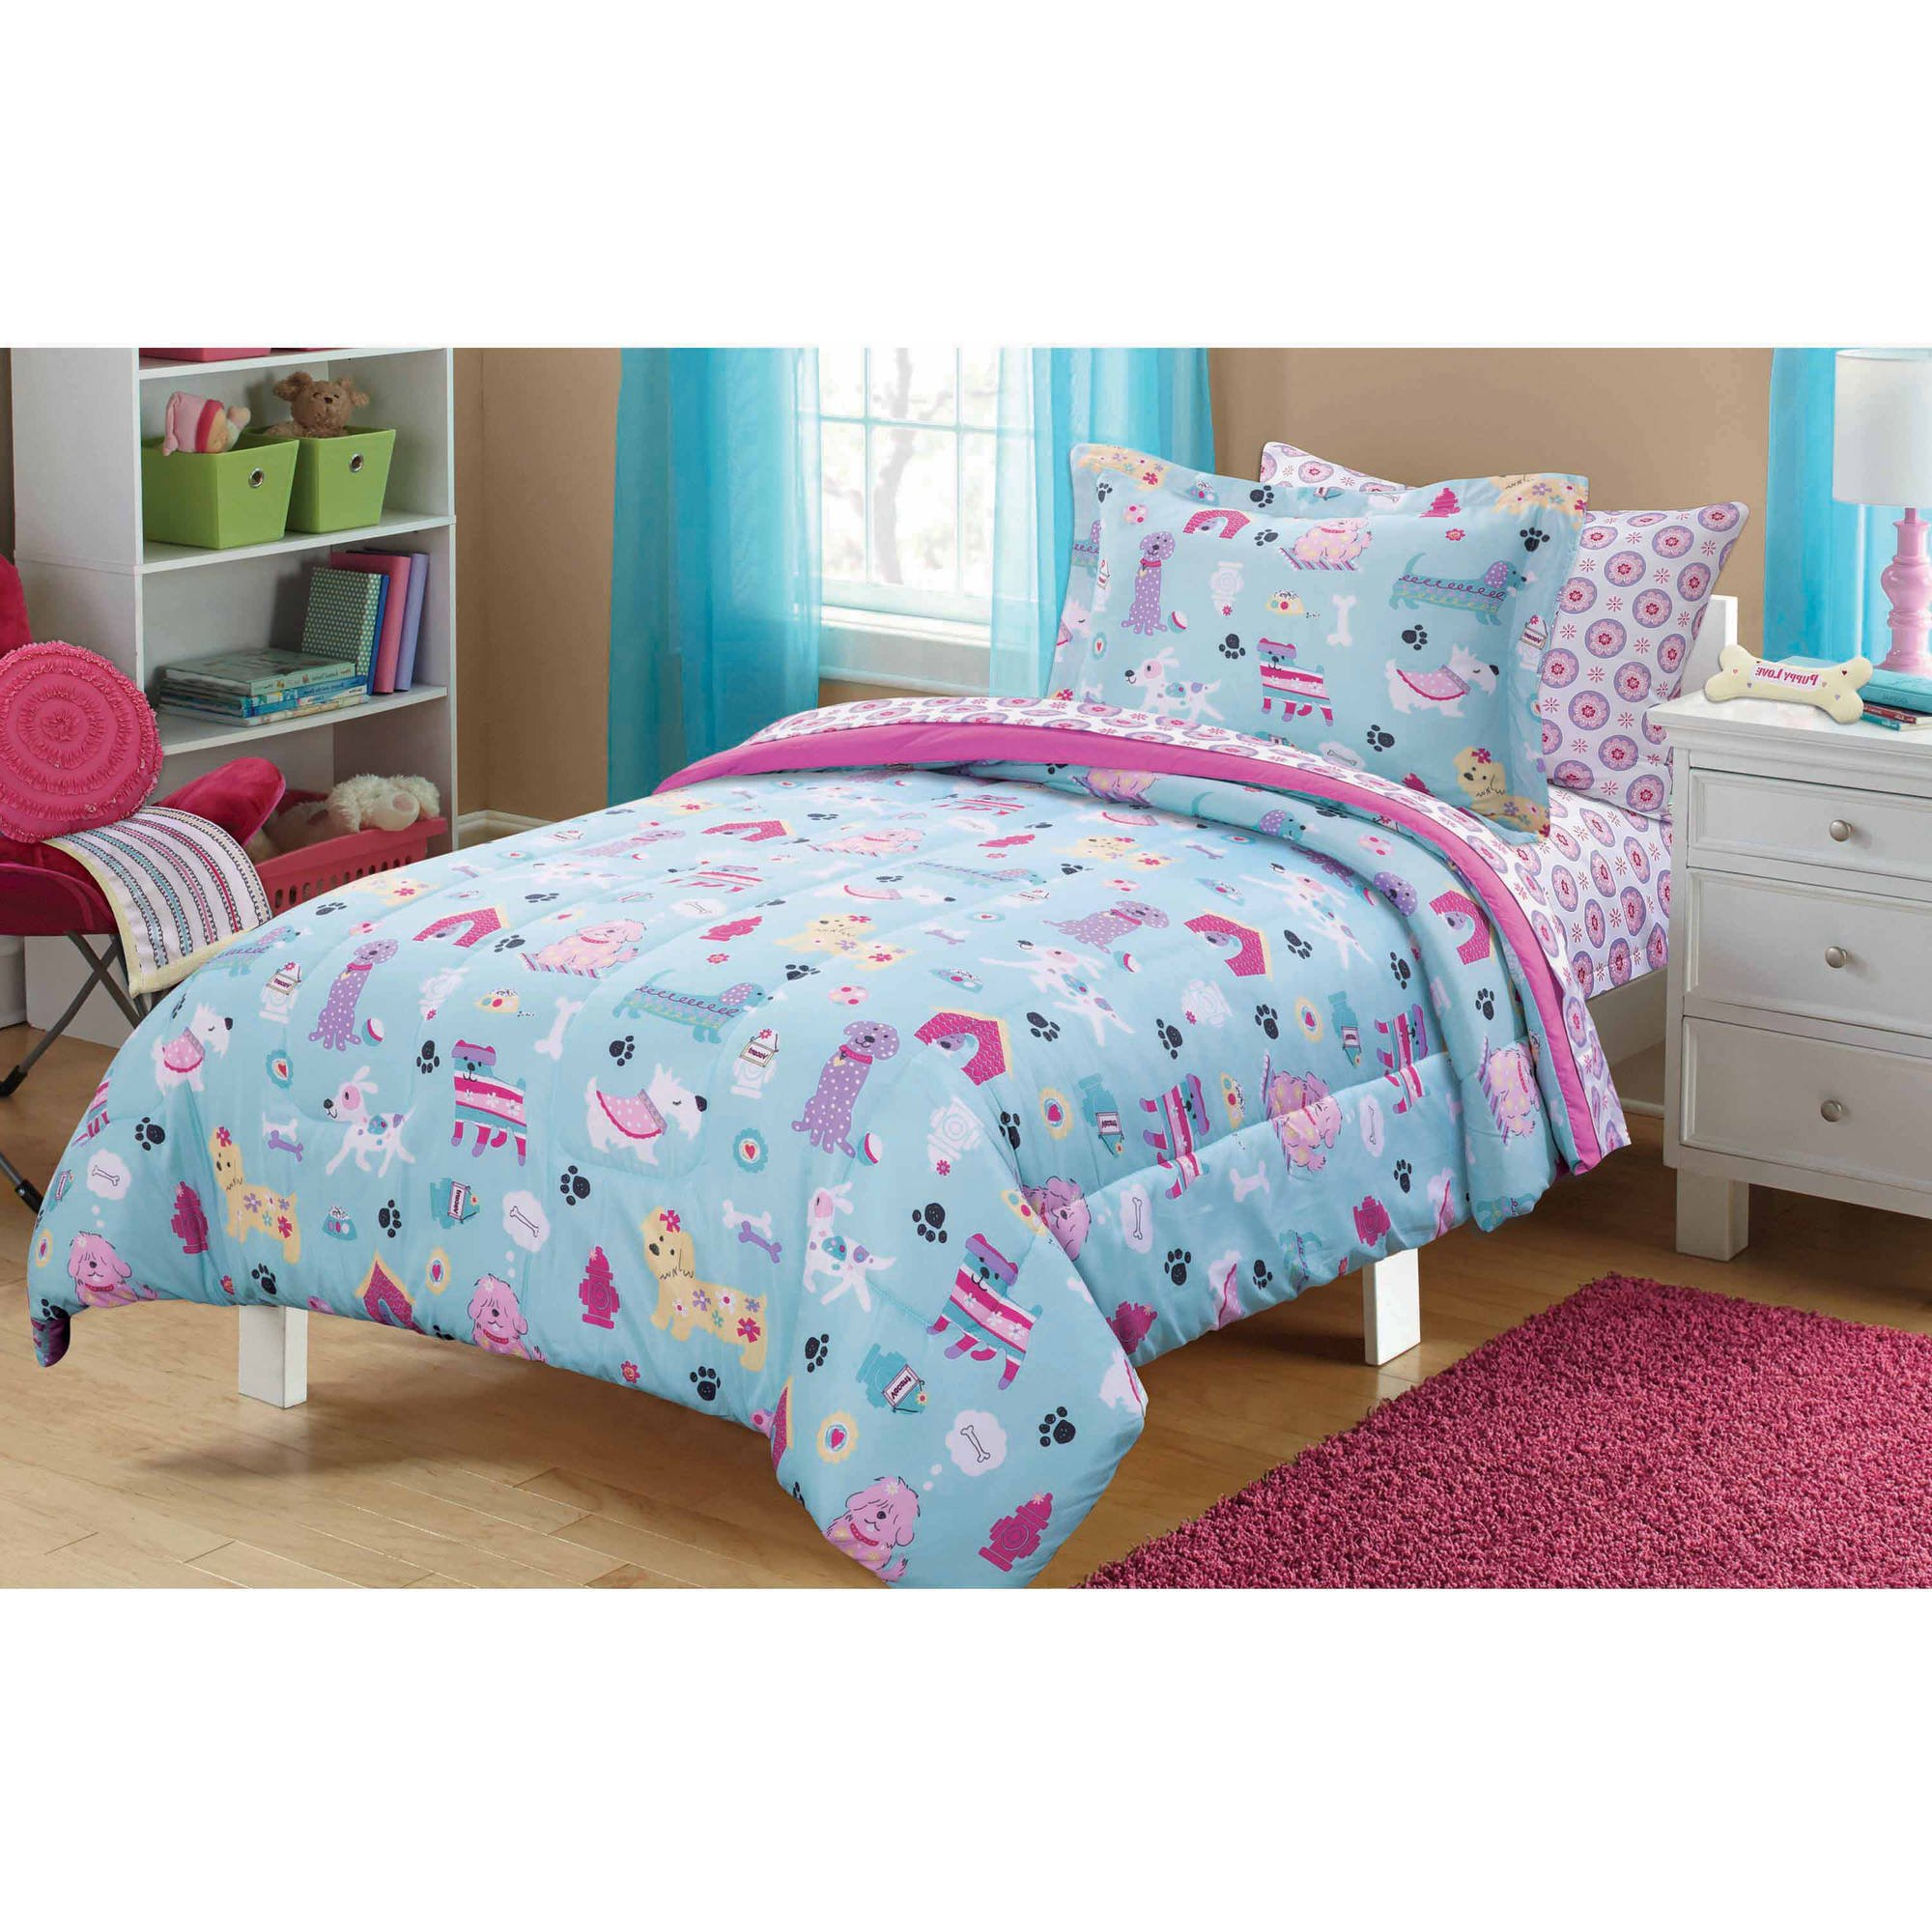 7 Piece Girls Pastel Blue Fun Dog Pooches Comforter Full Set, Hot Pink Dachshund Poodle Design Puppy Bulldog, Kids Bedding For Bedroom Whimsical Flower Pattern, Modern Cheerful Teen Themed, Polyester